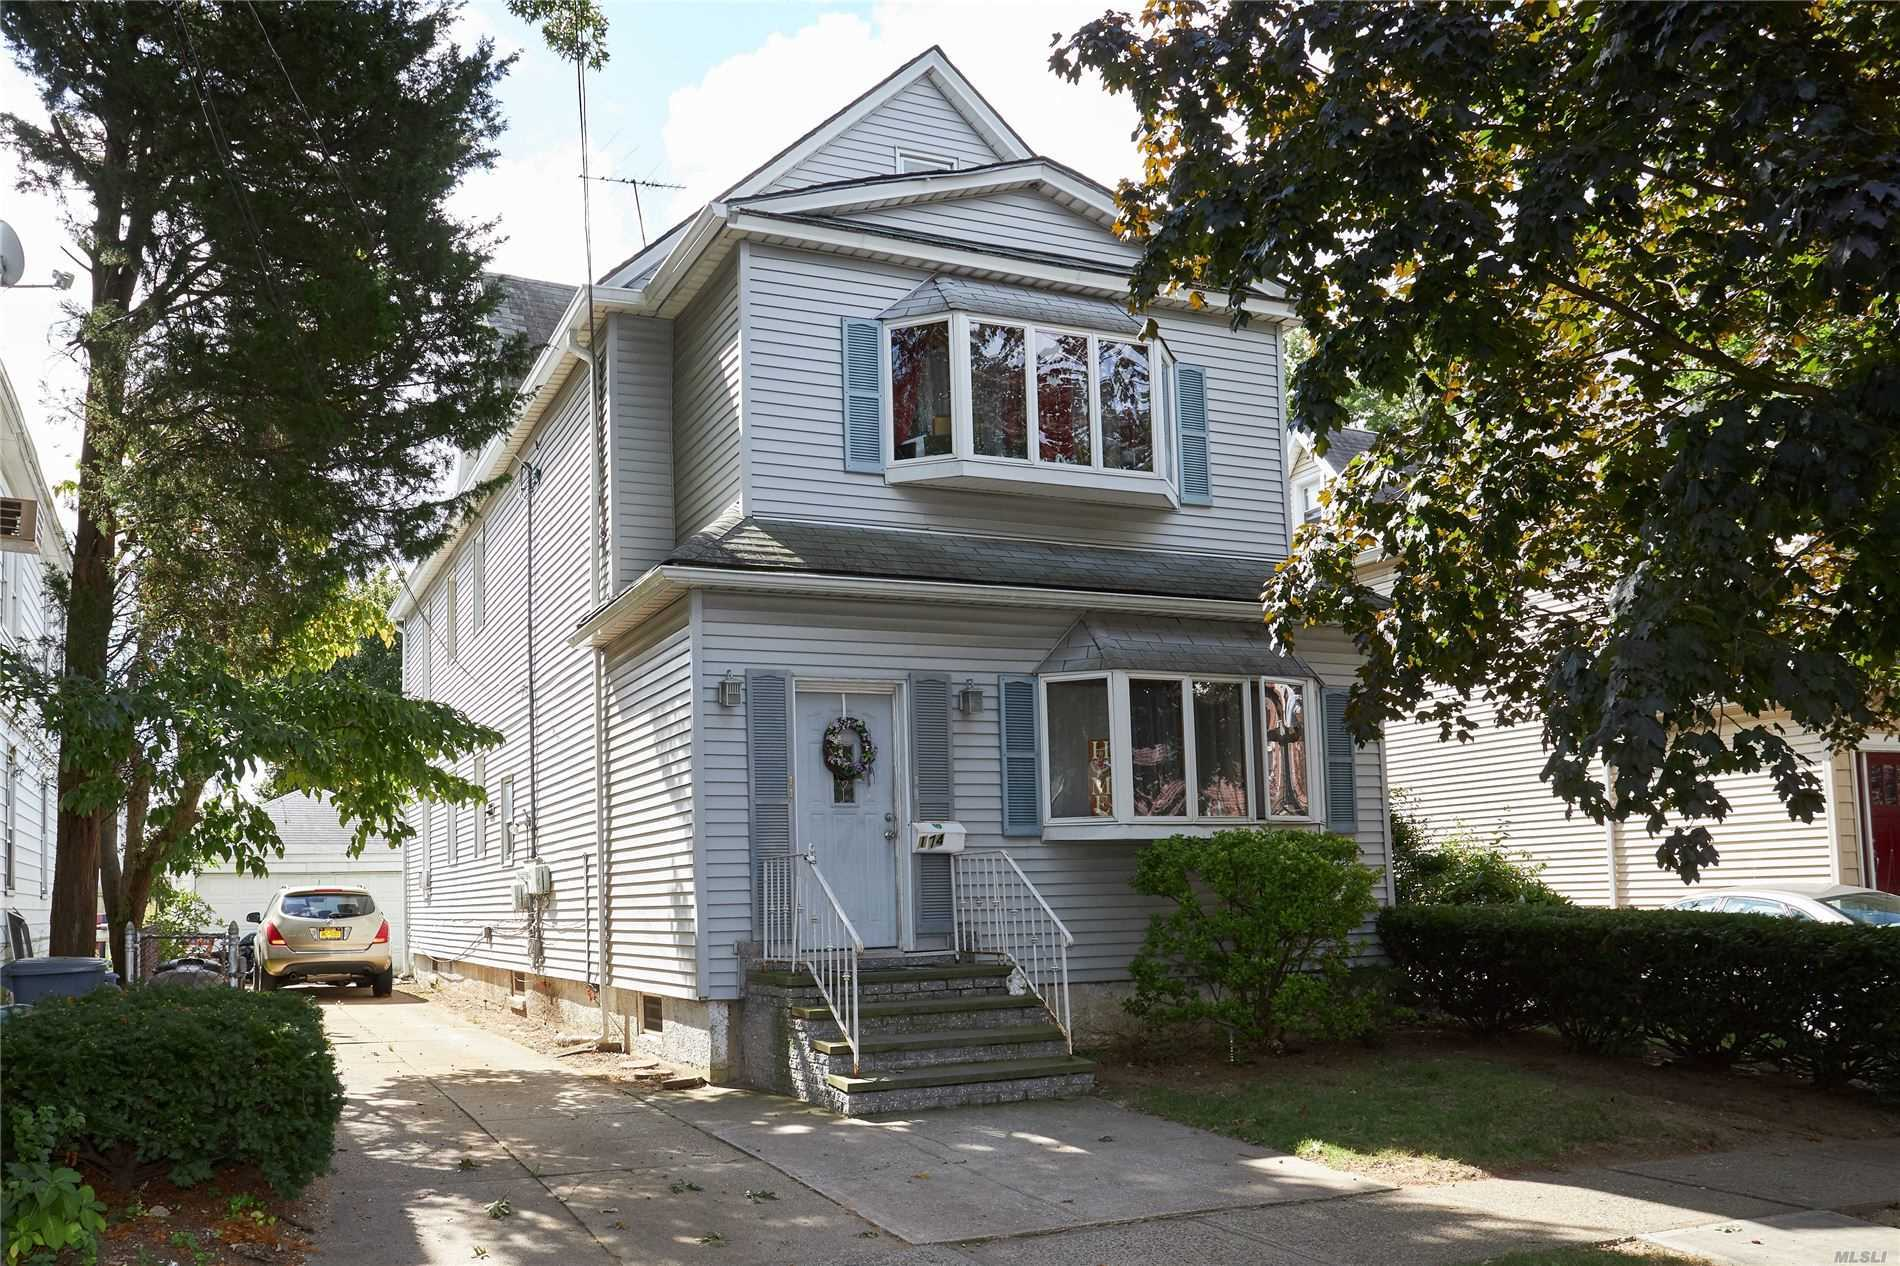 Property for sale at 174 Lowell Avenue, Floral Park NY 11001, Floral Park,  New York 11001